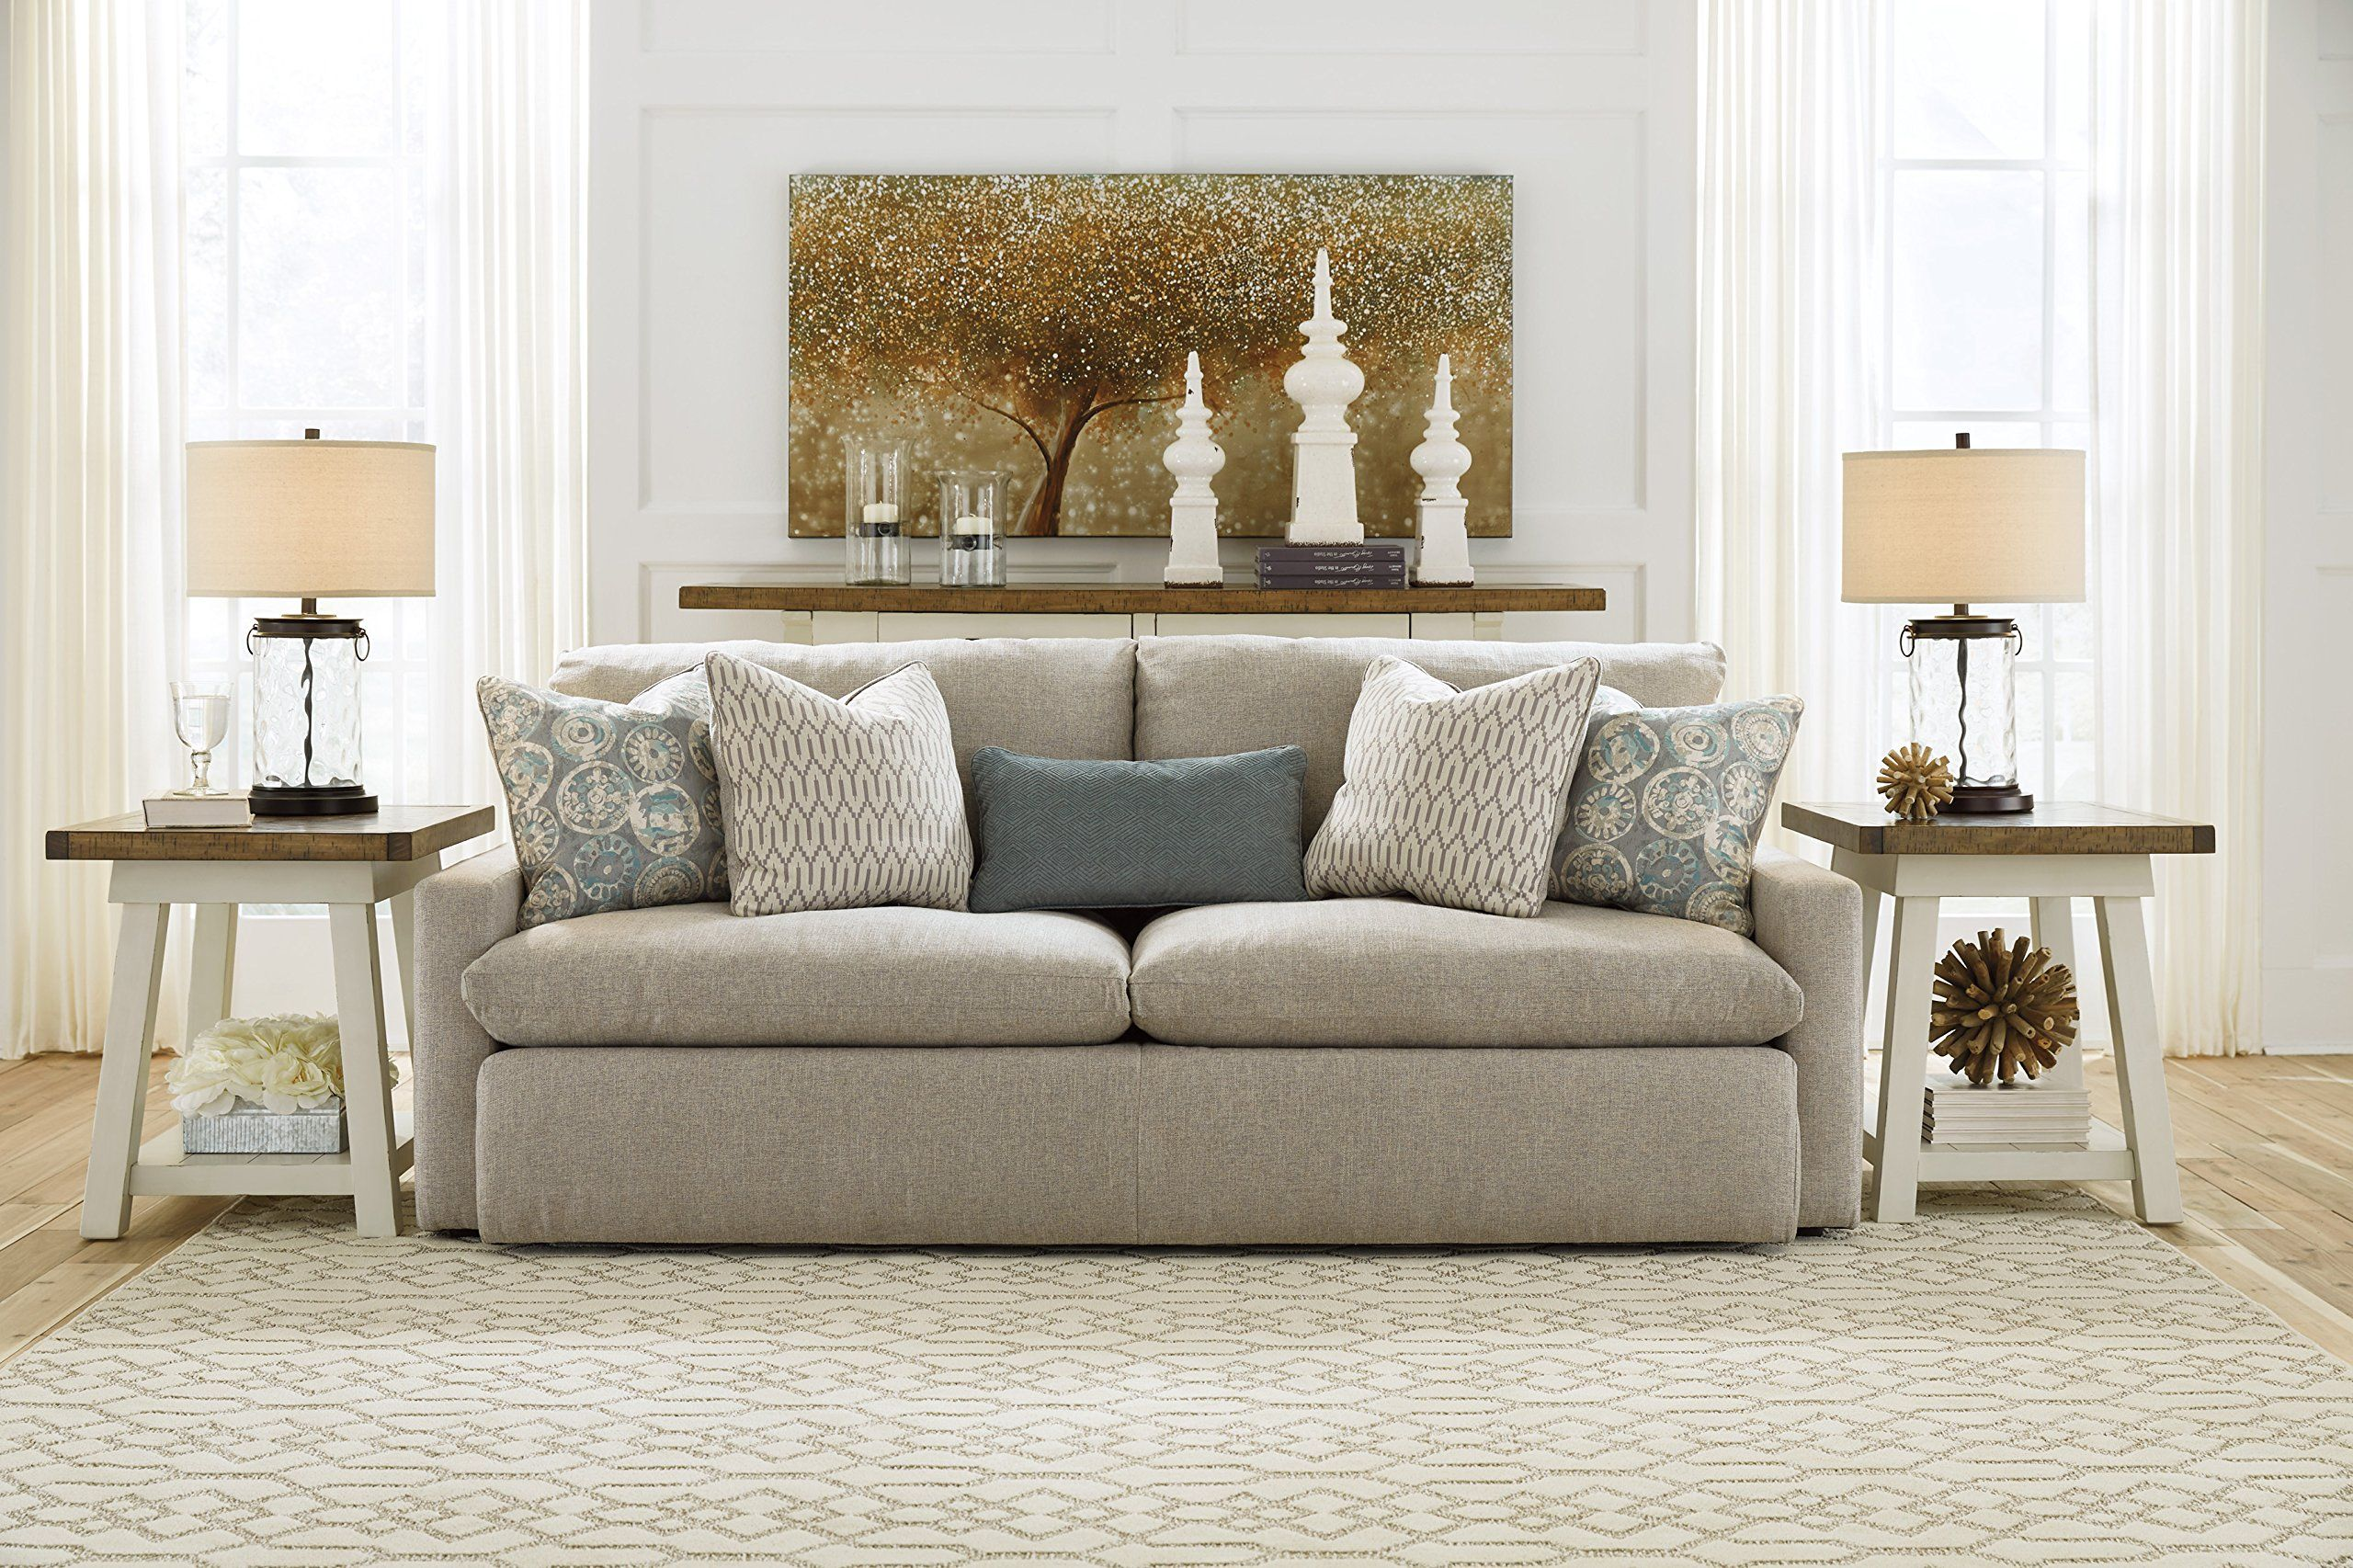 Melilla Casual Ash Color Fabric Sofa Need To Know Much More